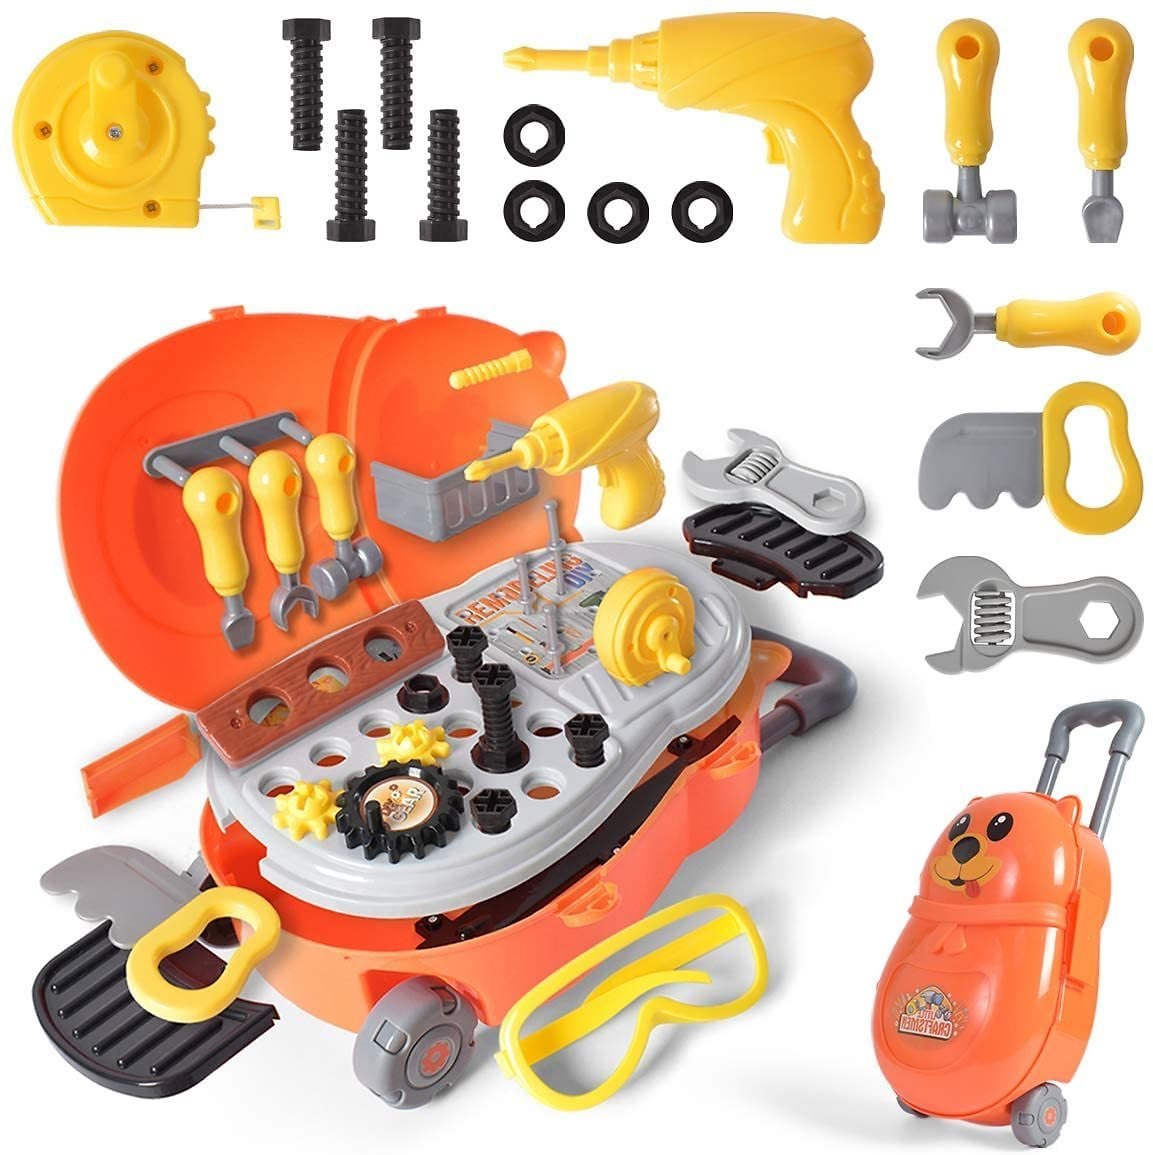 26 Pieces Kids Toy Tool Set with a Suitcase for $18.39 + Free Shipping with Prime